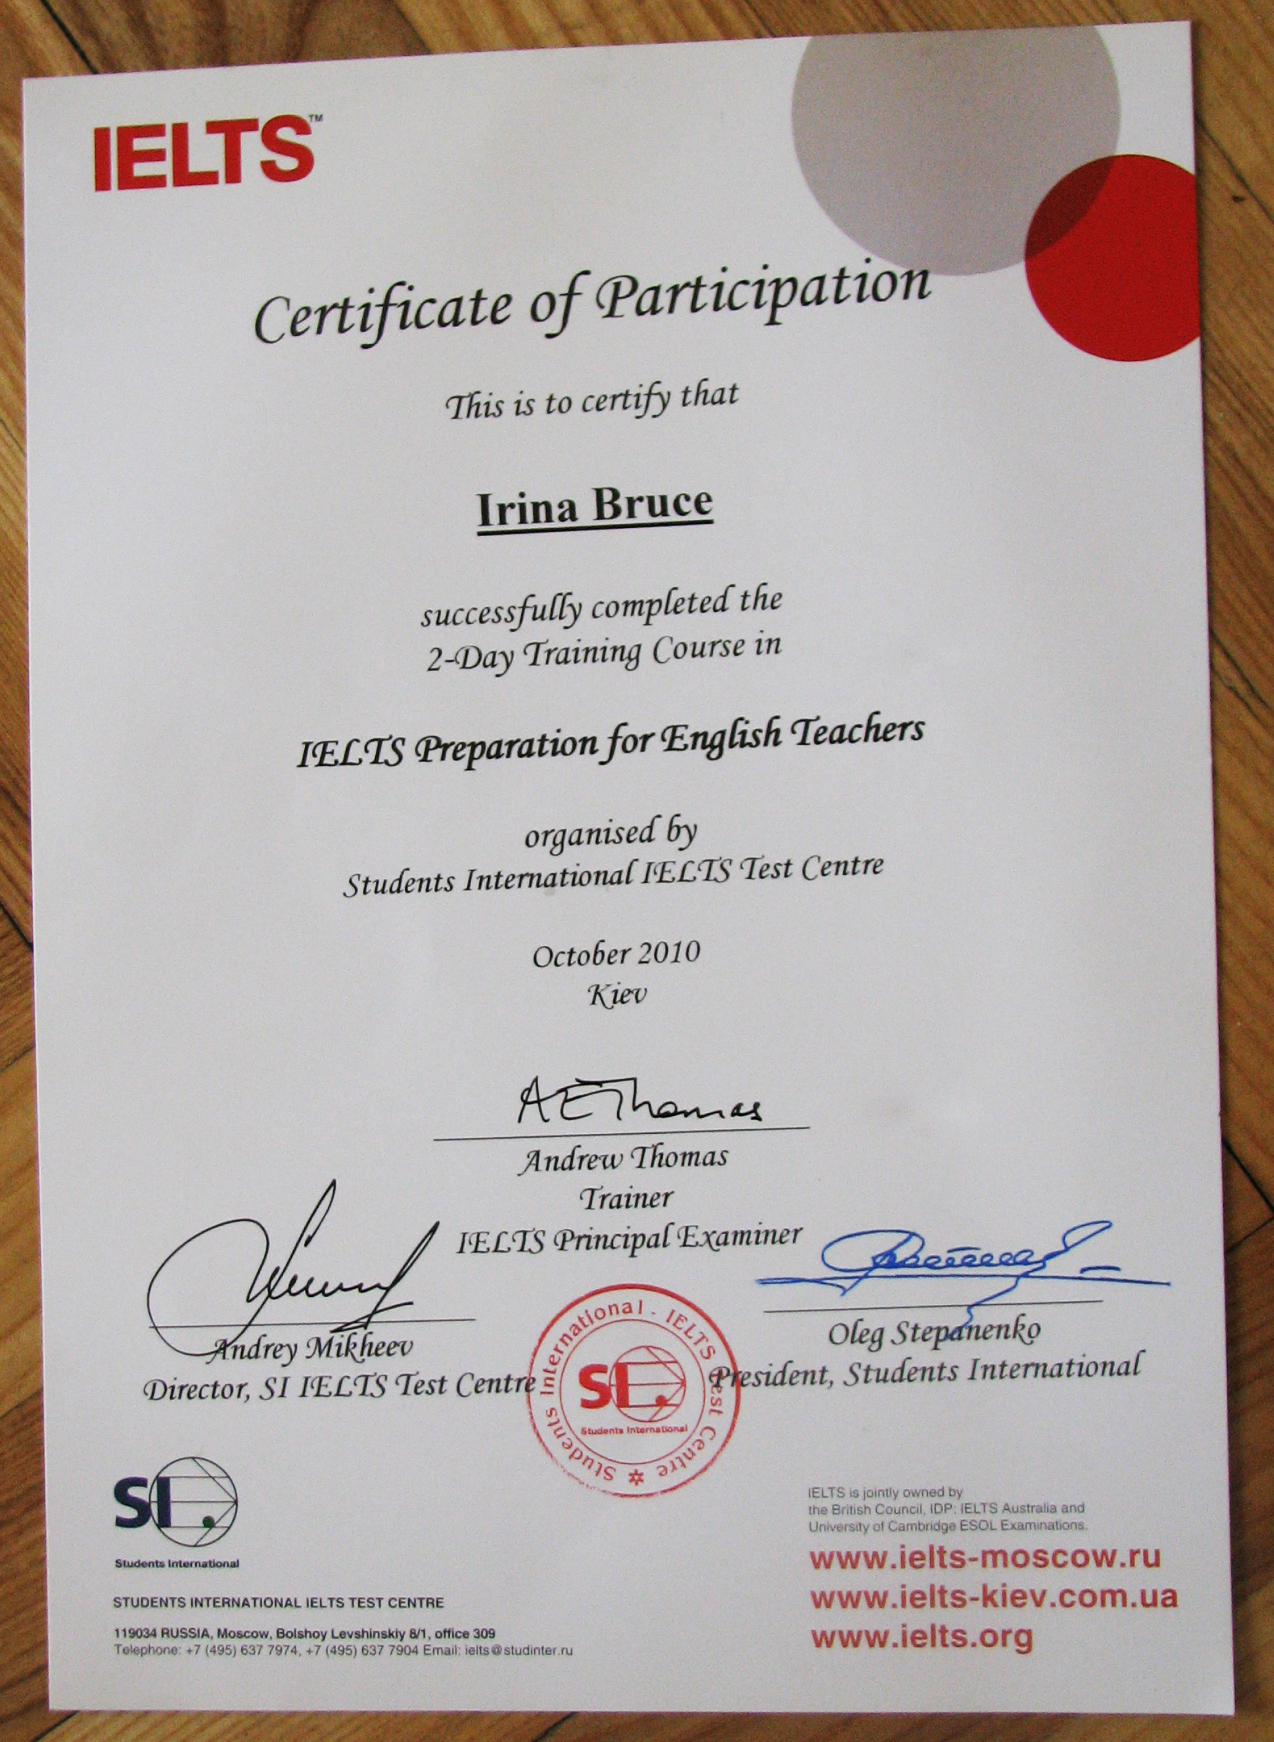 Irina Bruce - Certificate of Participation